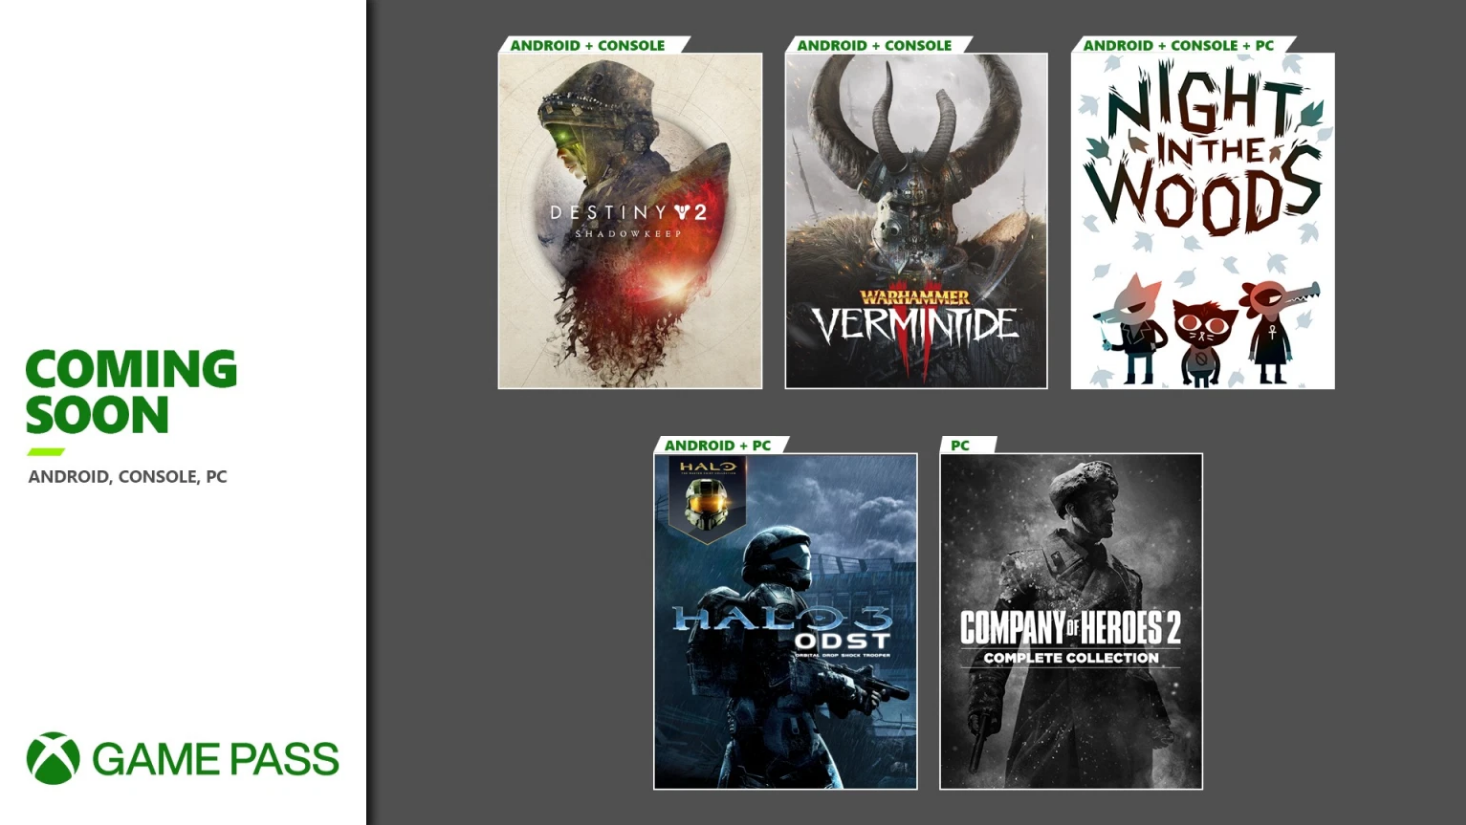 Xbox Game Pass пополнят Warhammer Vermintide 2, Halo 3 ODST и Destiny 2 Shadowkeep для Android, Xbox и ПК